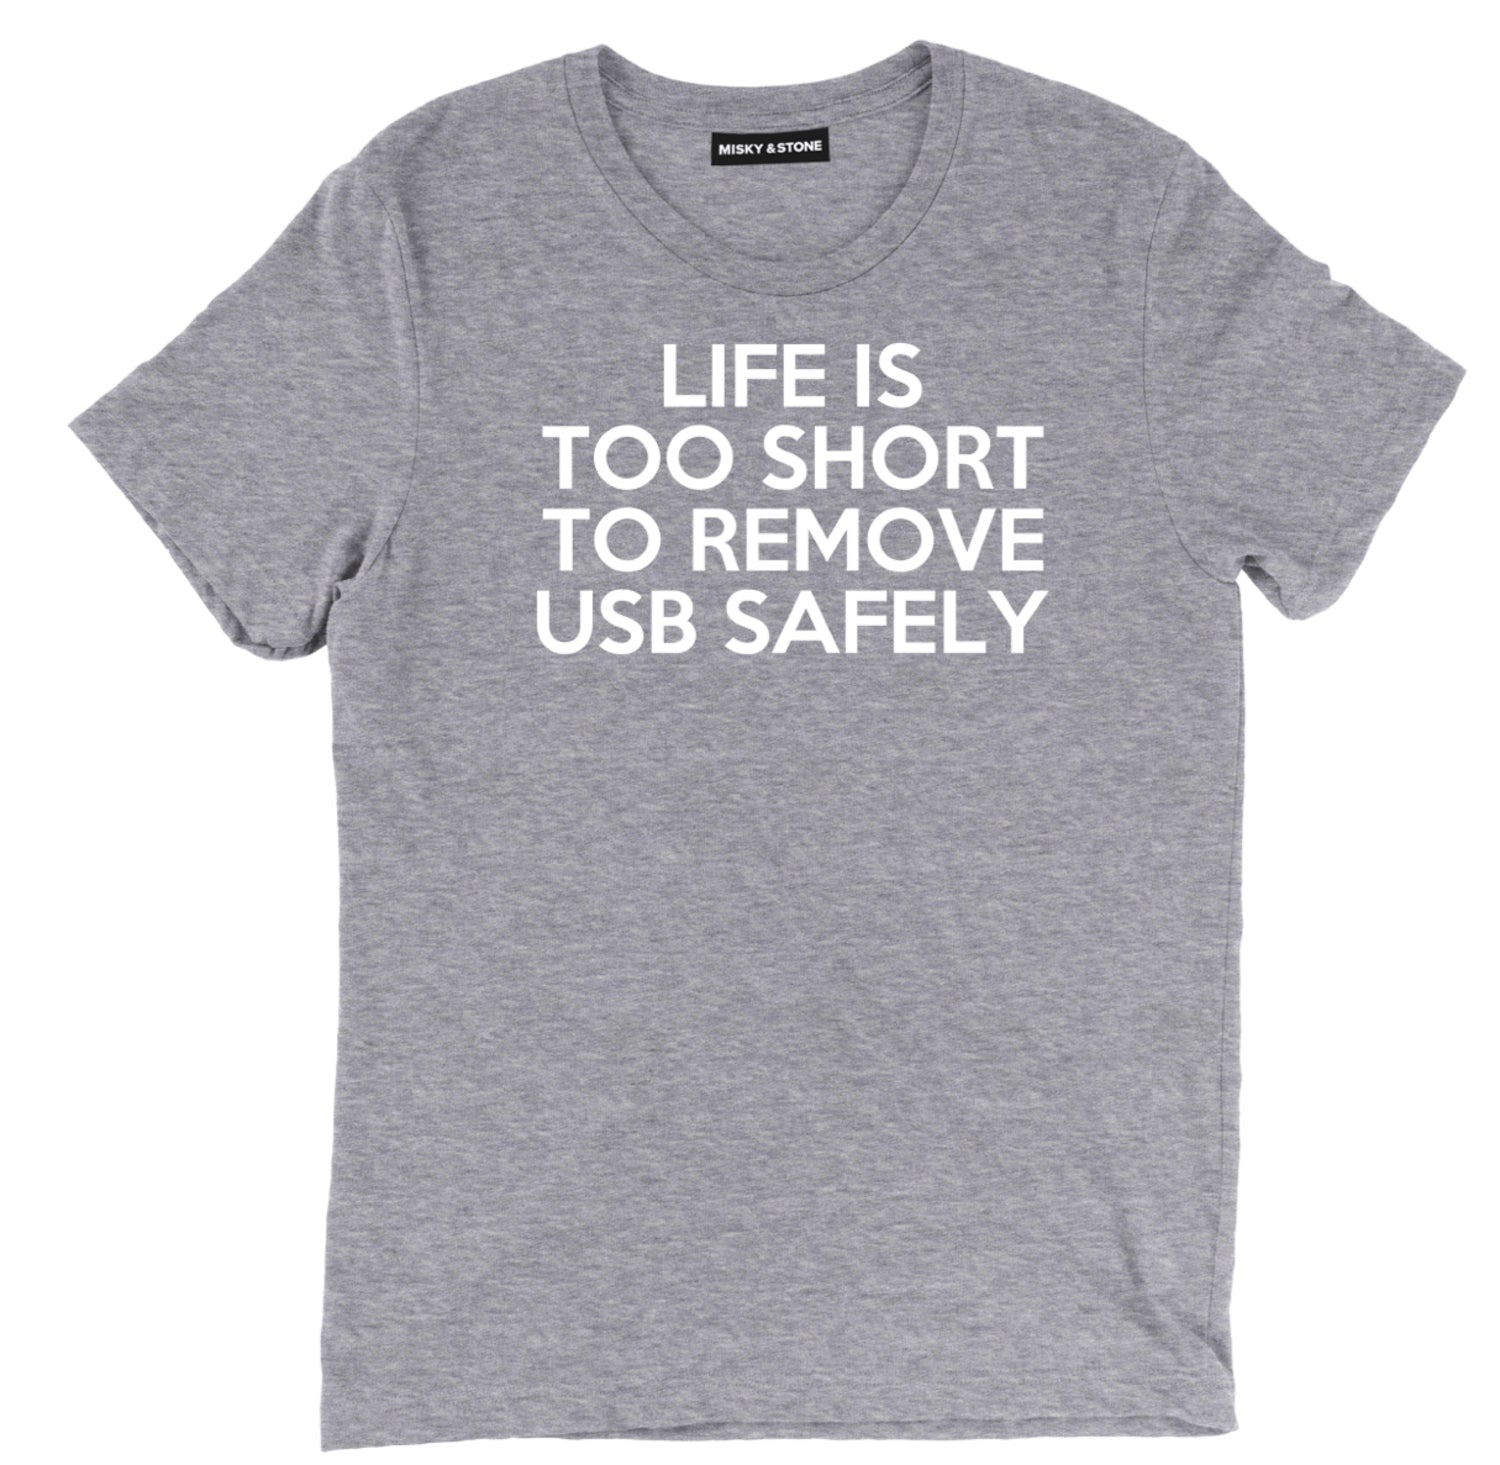 life is too short to remove usb safely nerd shirts, funny remove usb safely nerd t shirts, funny usb nerd shirts, usb geek shirts, geek t shirts, geek tees, geek apparel, geek tee shirts,